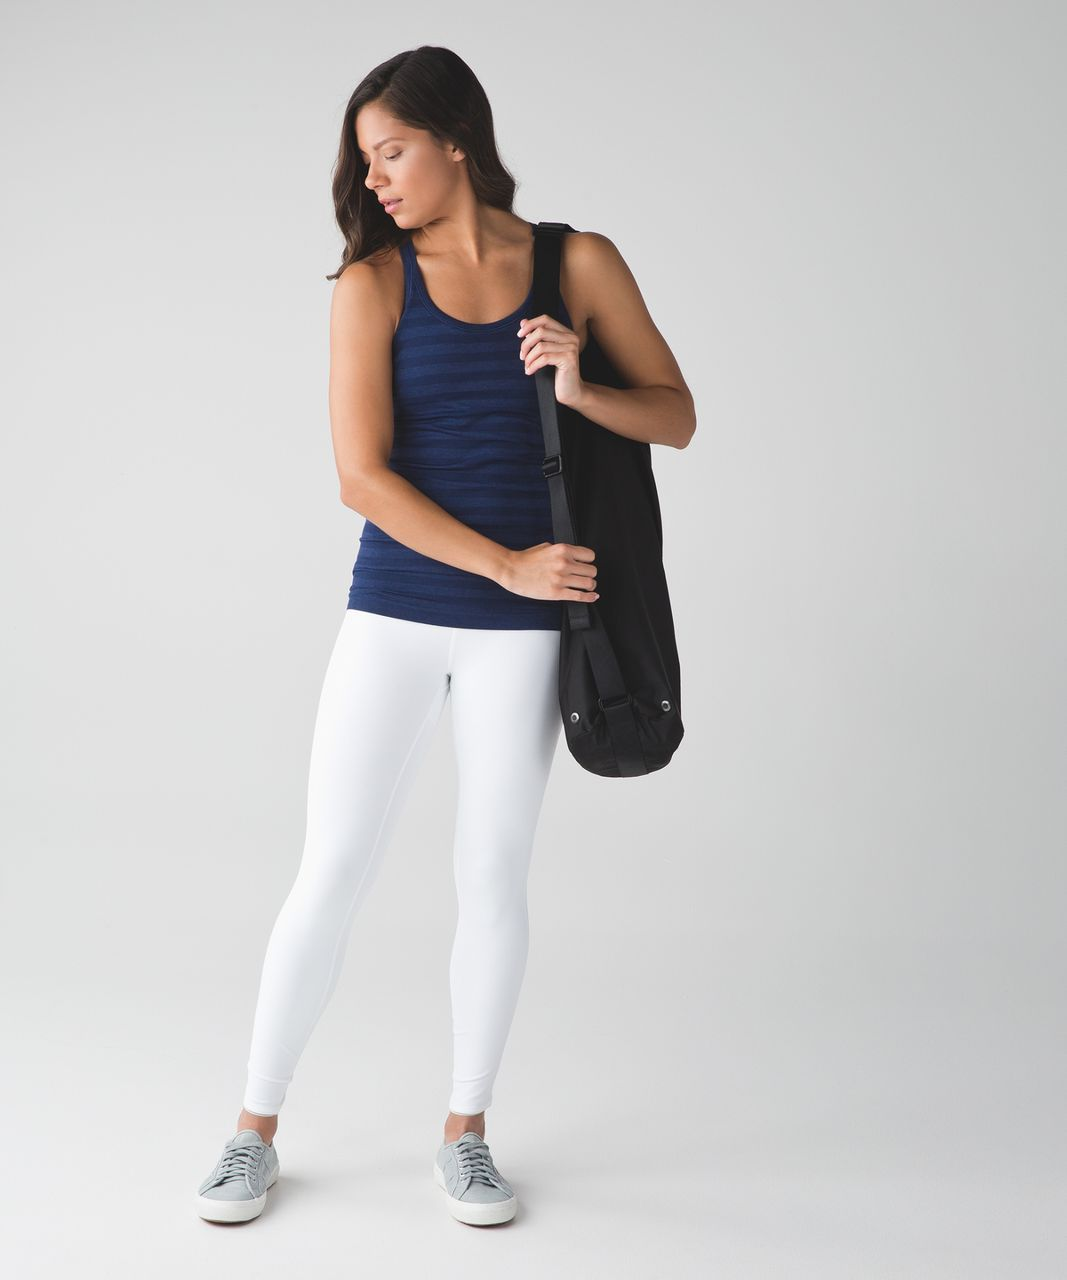 Lululemon Ebb To Street Tank - Heathered Deep Navy (Striped)